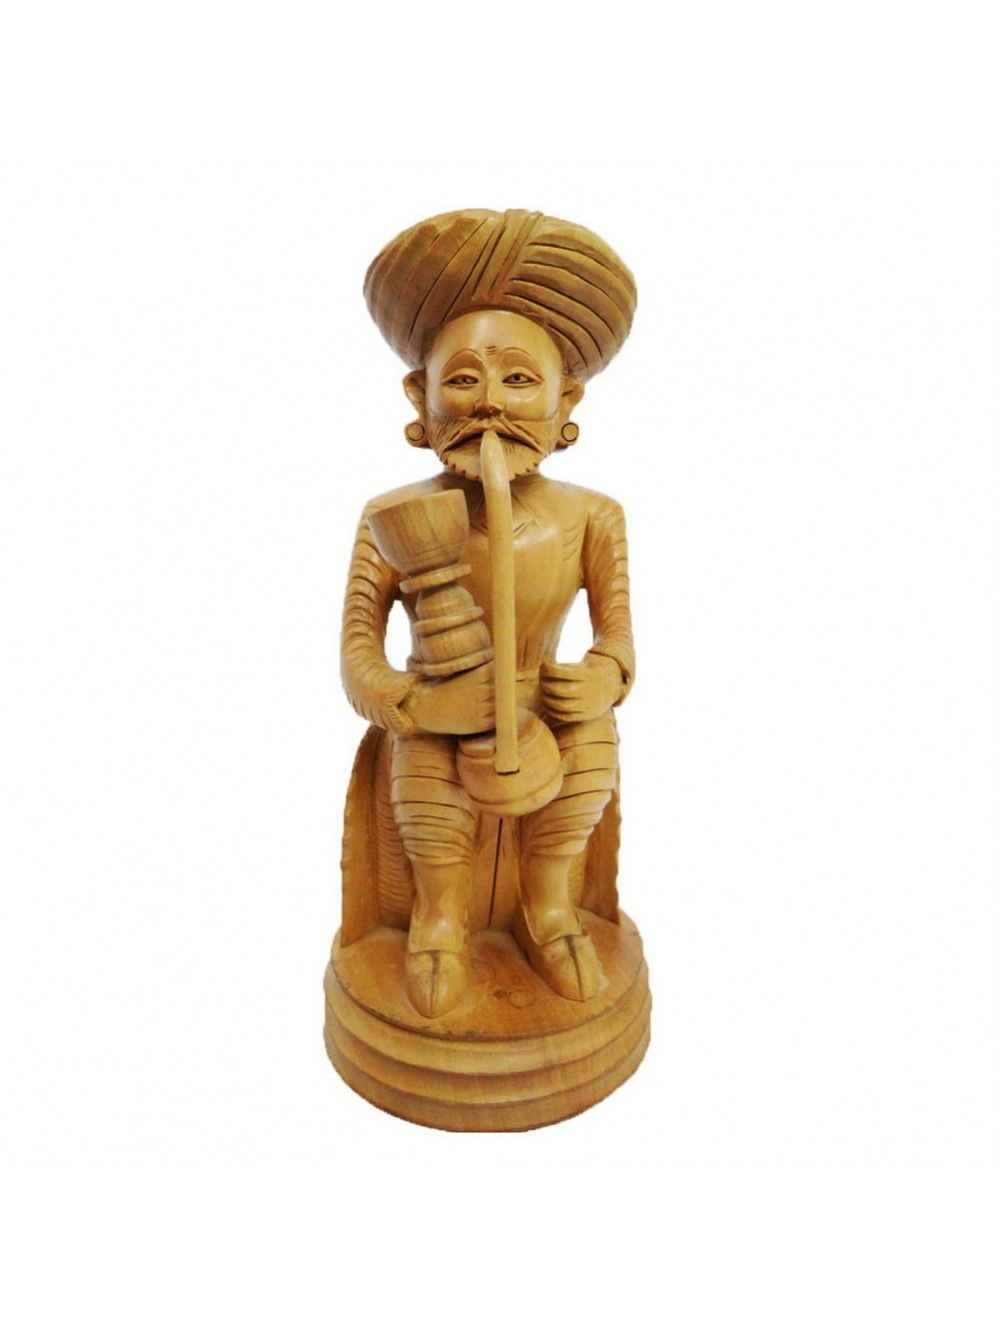 Engraved Wooden Statue Village Man Decor Art | IndianBeautifulArt